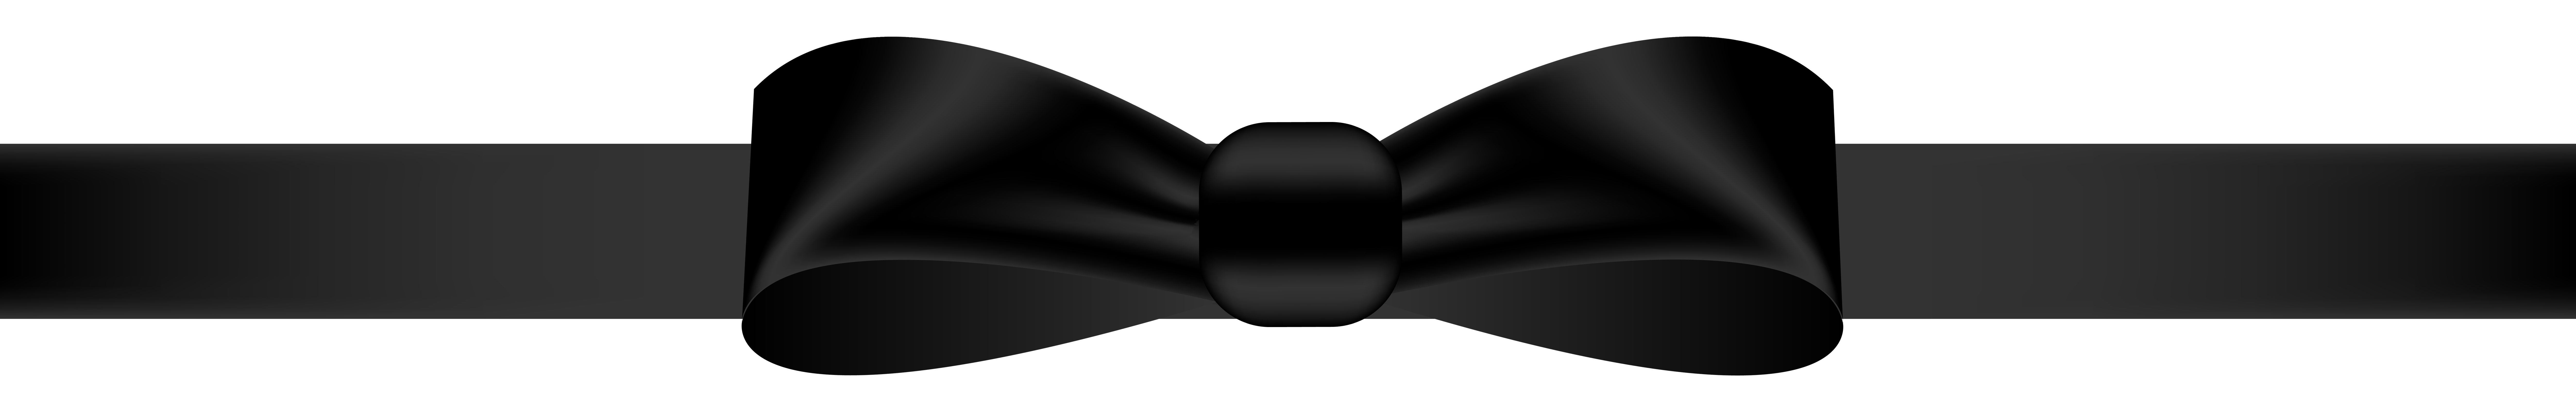 Black Bow Png & Free Black Bow.png Transparent Images #15845.